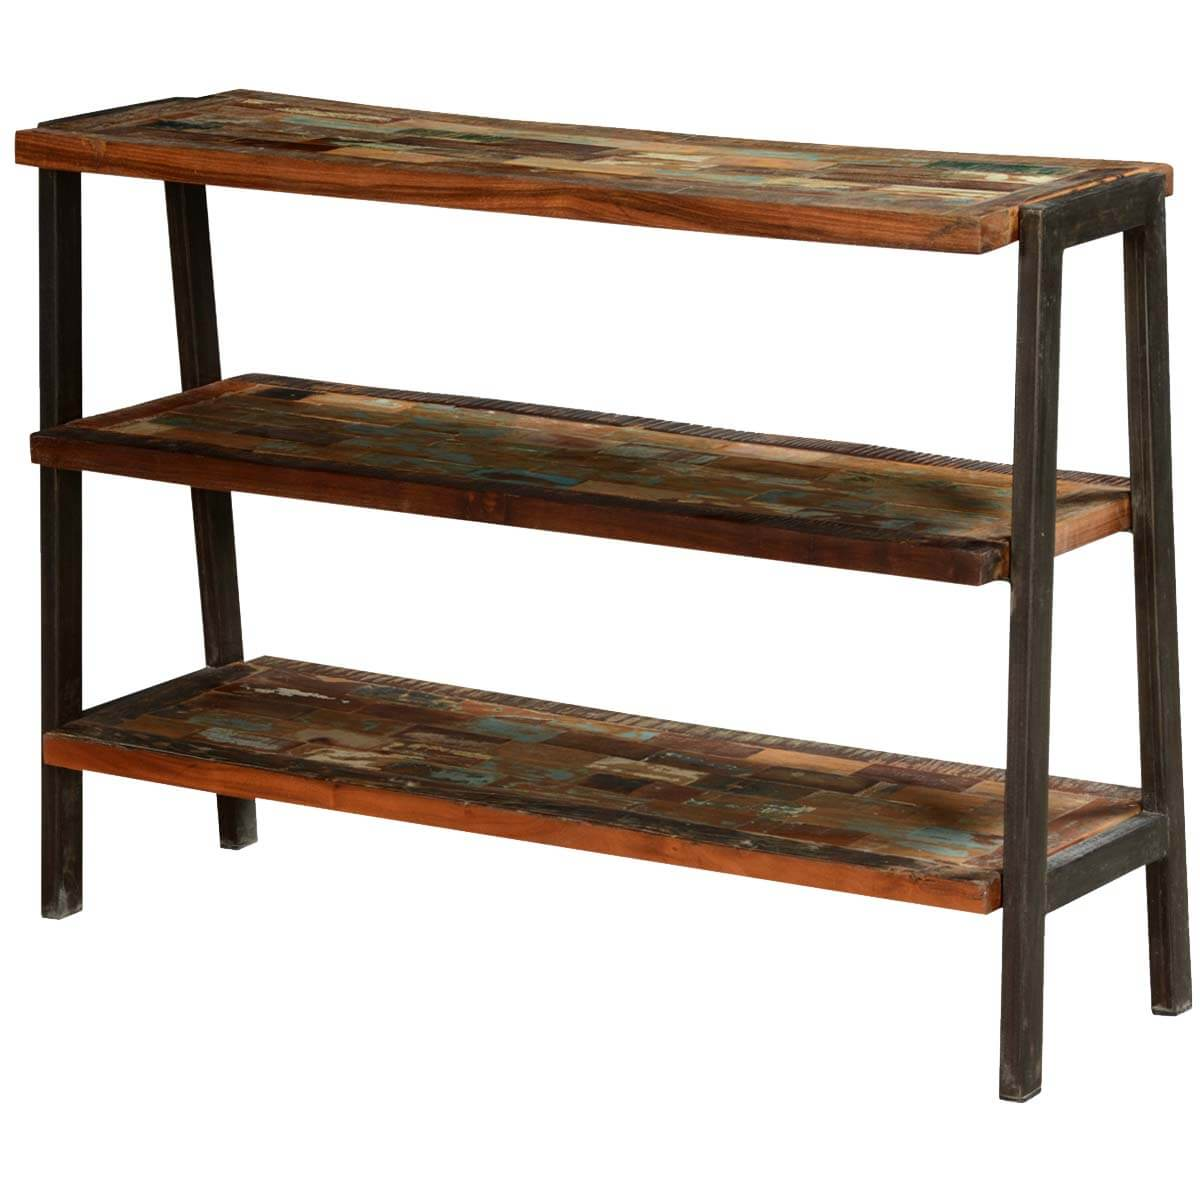 Painted bricks reclaimed wood iron open shelf console